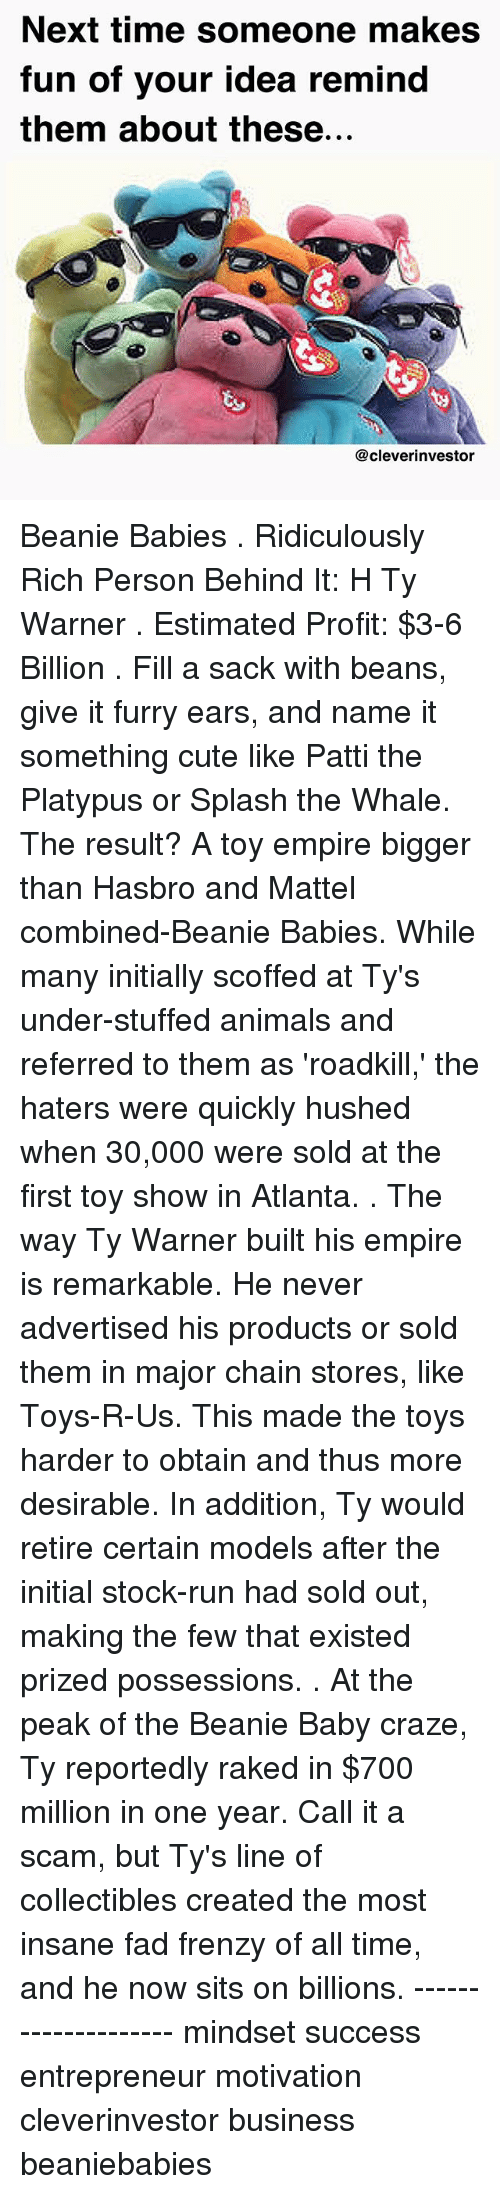 Animals, Cute, and Empire: Next time someone makes  fun of your idea remind  them about these...  @cleverinvestor Beanie Babies . Ridiculously Rich Person Behind It: H Ty Warner . Estimated Profit: $3-6 Billion . Fill a sack with beans, give it furry ears, and name it something cute like Patti the Platypus or Splash the Whale. The result? A toy empire bigger than Hasbro and Mattel combined-Beanie Babies. While many initially scoffed at Ty's under-stuffed animals and referred to them as 'roadkill,' the haters were quickly hushed when 30,000 were sold at the first toy show in Atlanta. . The way Ty Warner built his empire is remarkable. He never advertised his products or sold them in major chain stores, like Toys-R-Us. This made the toys harder to obtain and thus more desirable. In addition, Ty would retire certain models after the initial stock-run had sold out, making the few that existed prized possessions. . At the peak of the Beanie Baby craze, Ty reportedly raked in $700 million in one year. Call it a scam, but Ty's line of collectibles created the most insane fad frenzy of all time, and he now sits on billions. -------------------- mindset success entrepreneur motivation cleverinvestor business beaniebabies